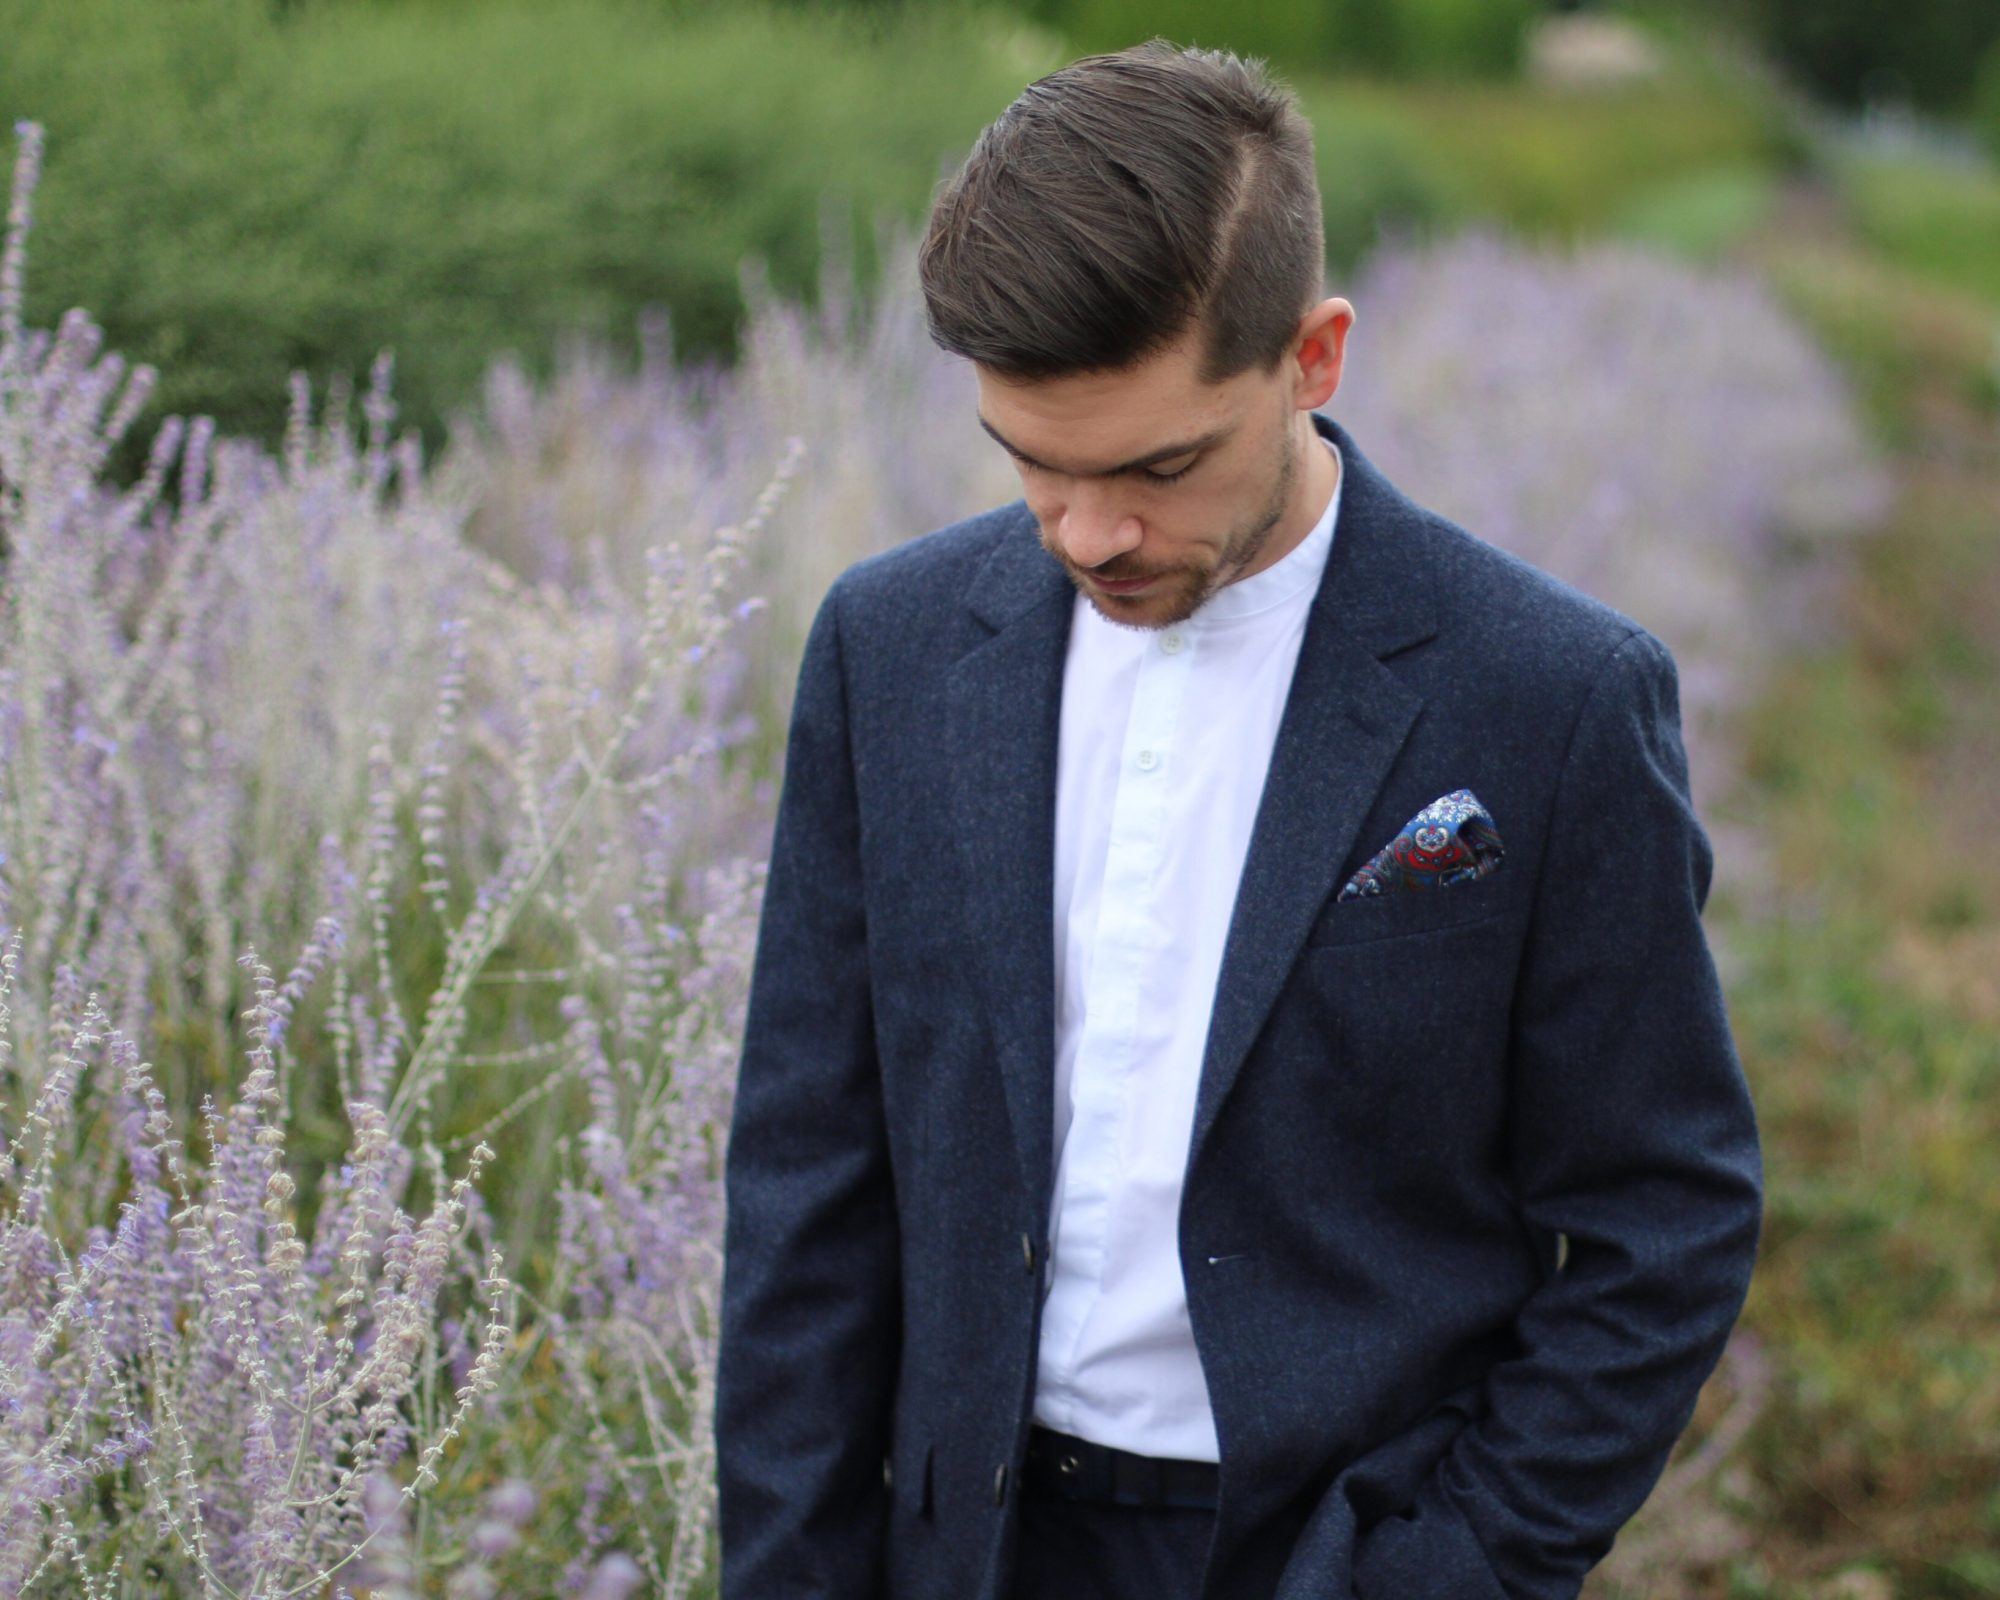 Man For Himself Jack Wills Bloomsbury Suit